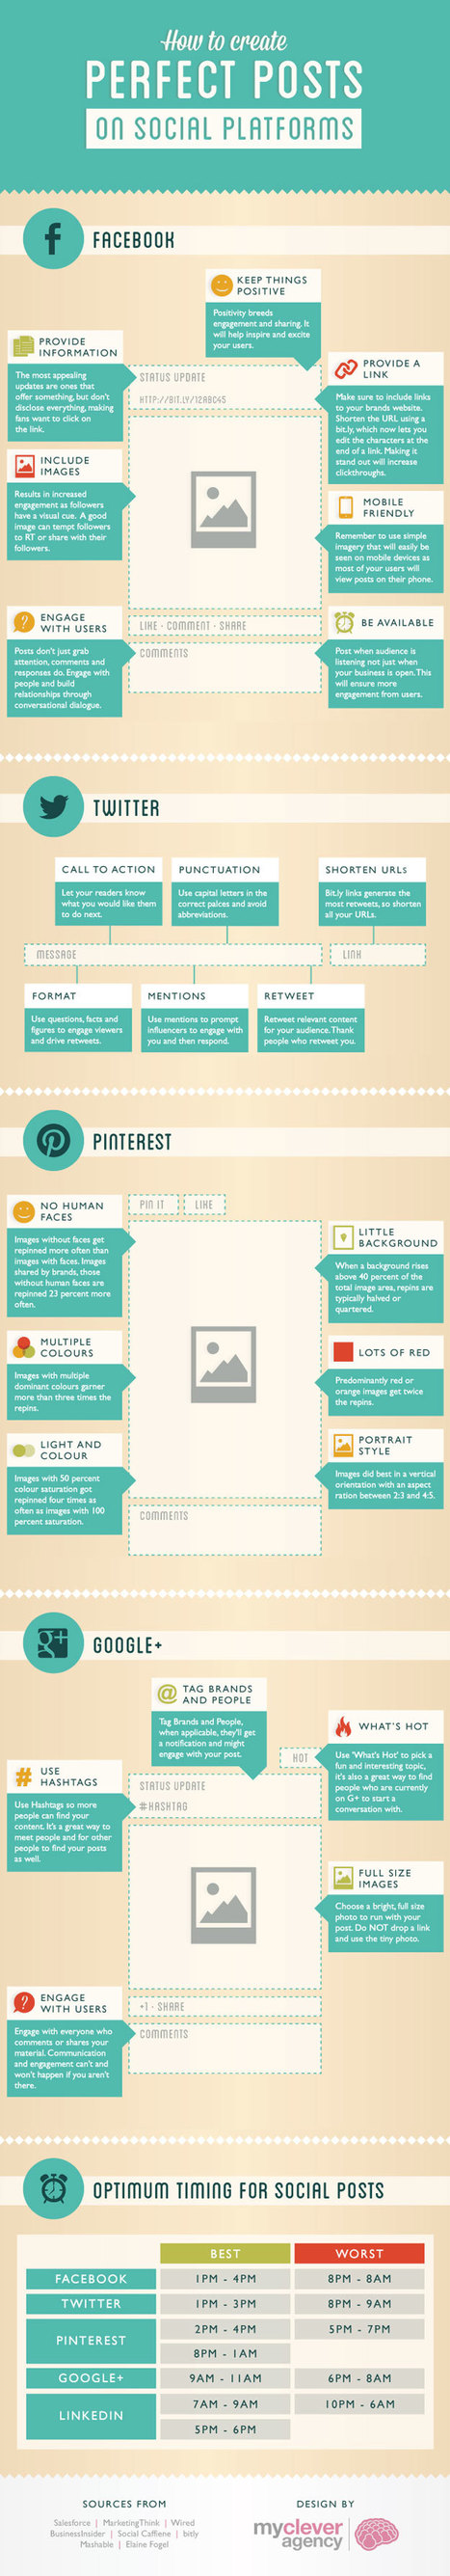 How To Create Effective Posts on the 4 Main Social Sites [Infographic] | Social Media Marketing Strategy for Business | Scoop.it